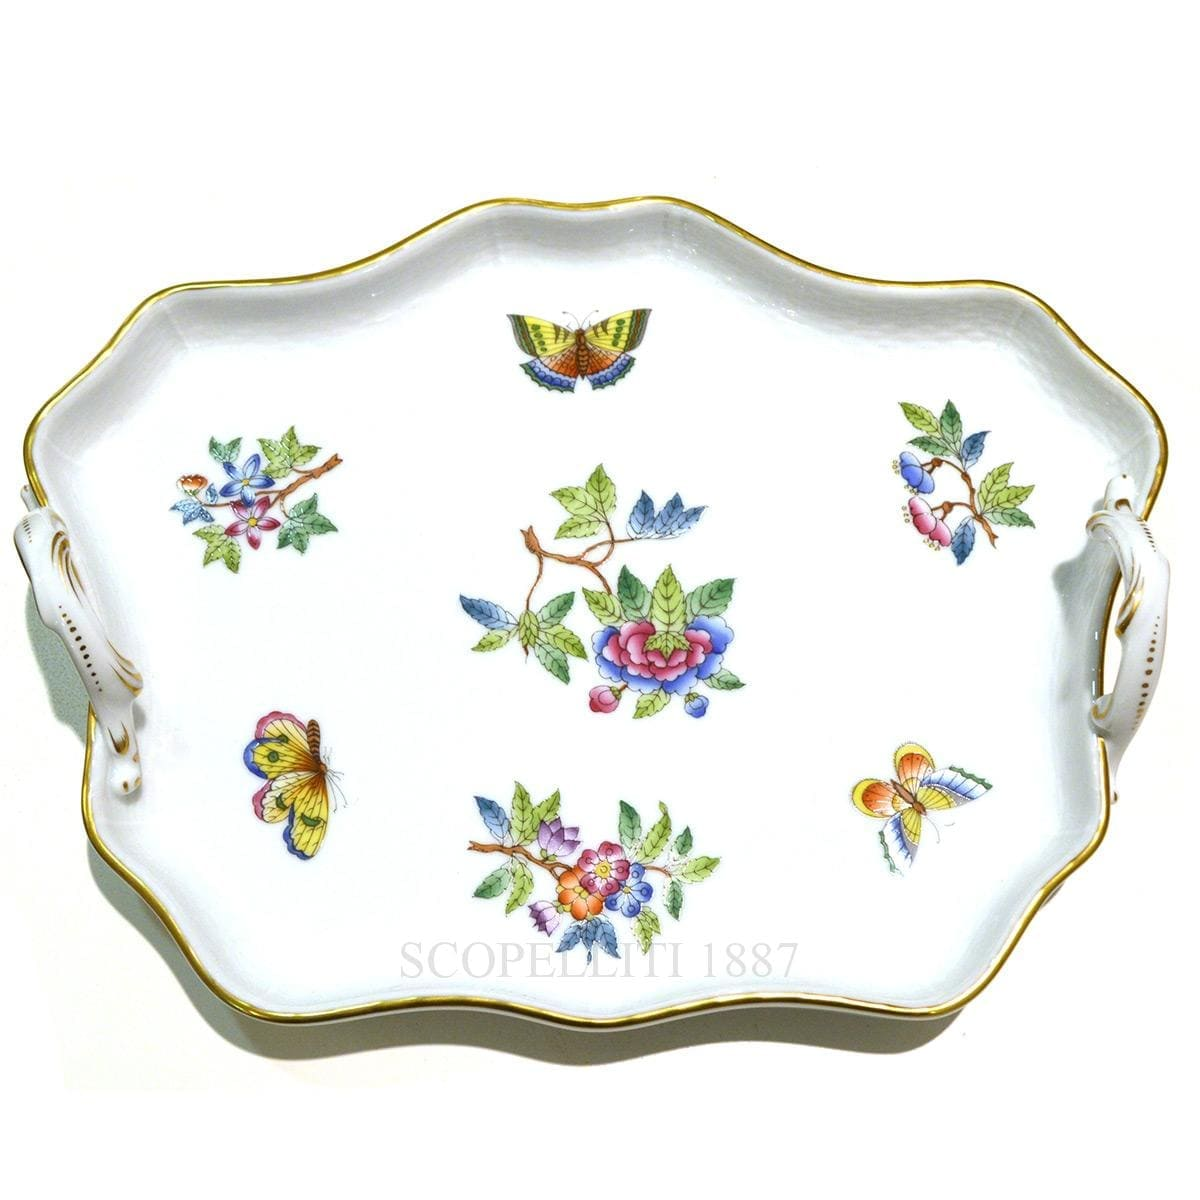 herend porcelain queen victoria handled tray